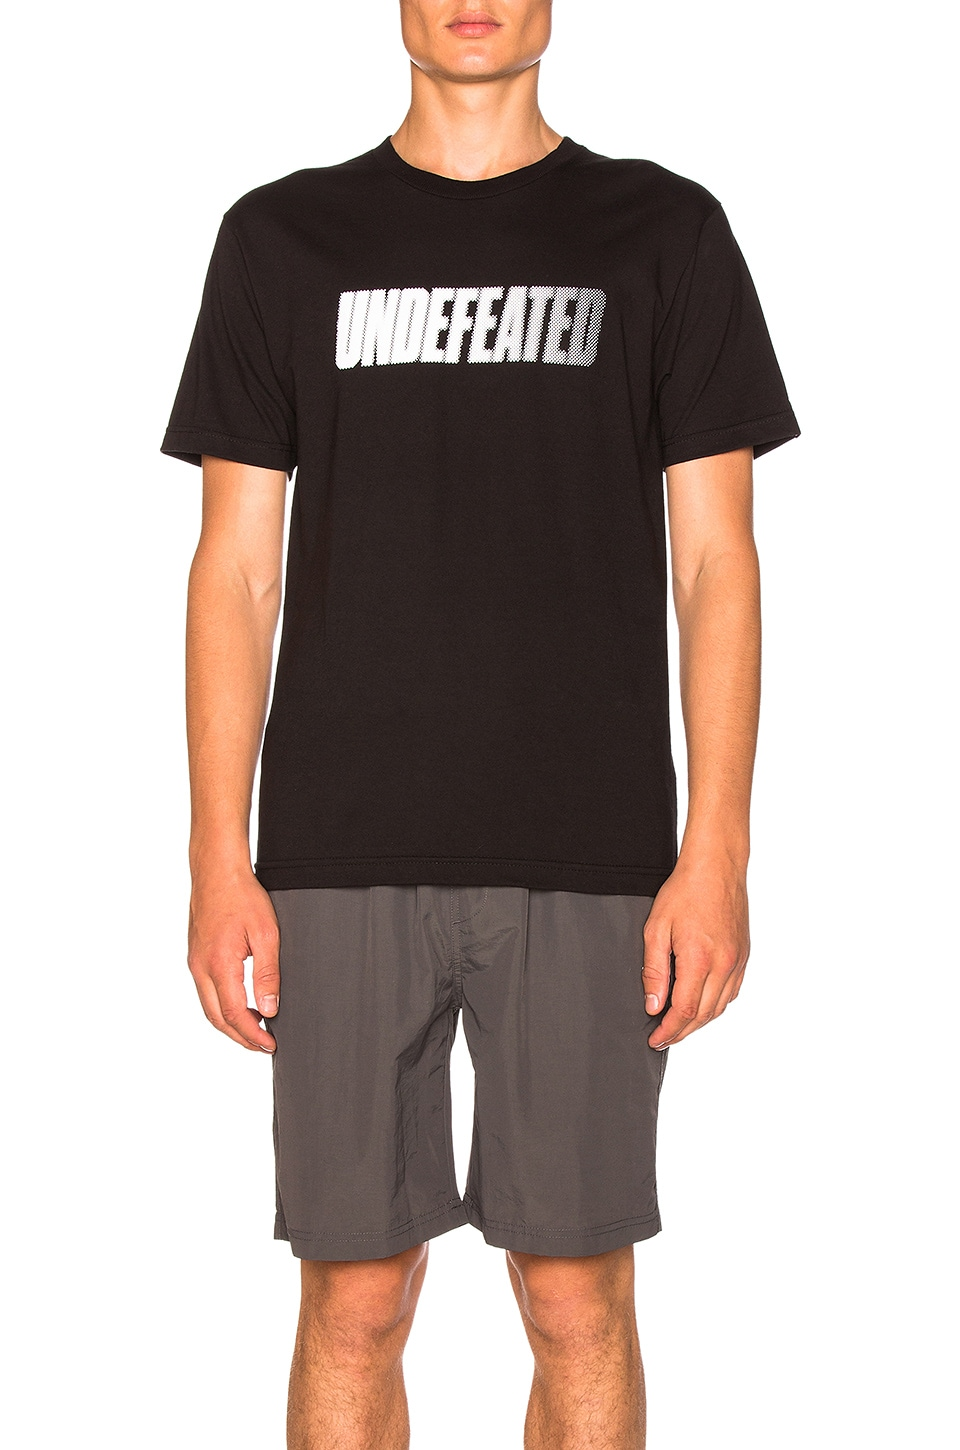 Speed Tone Tee by Undefeated